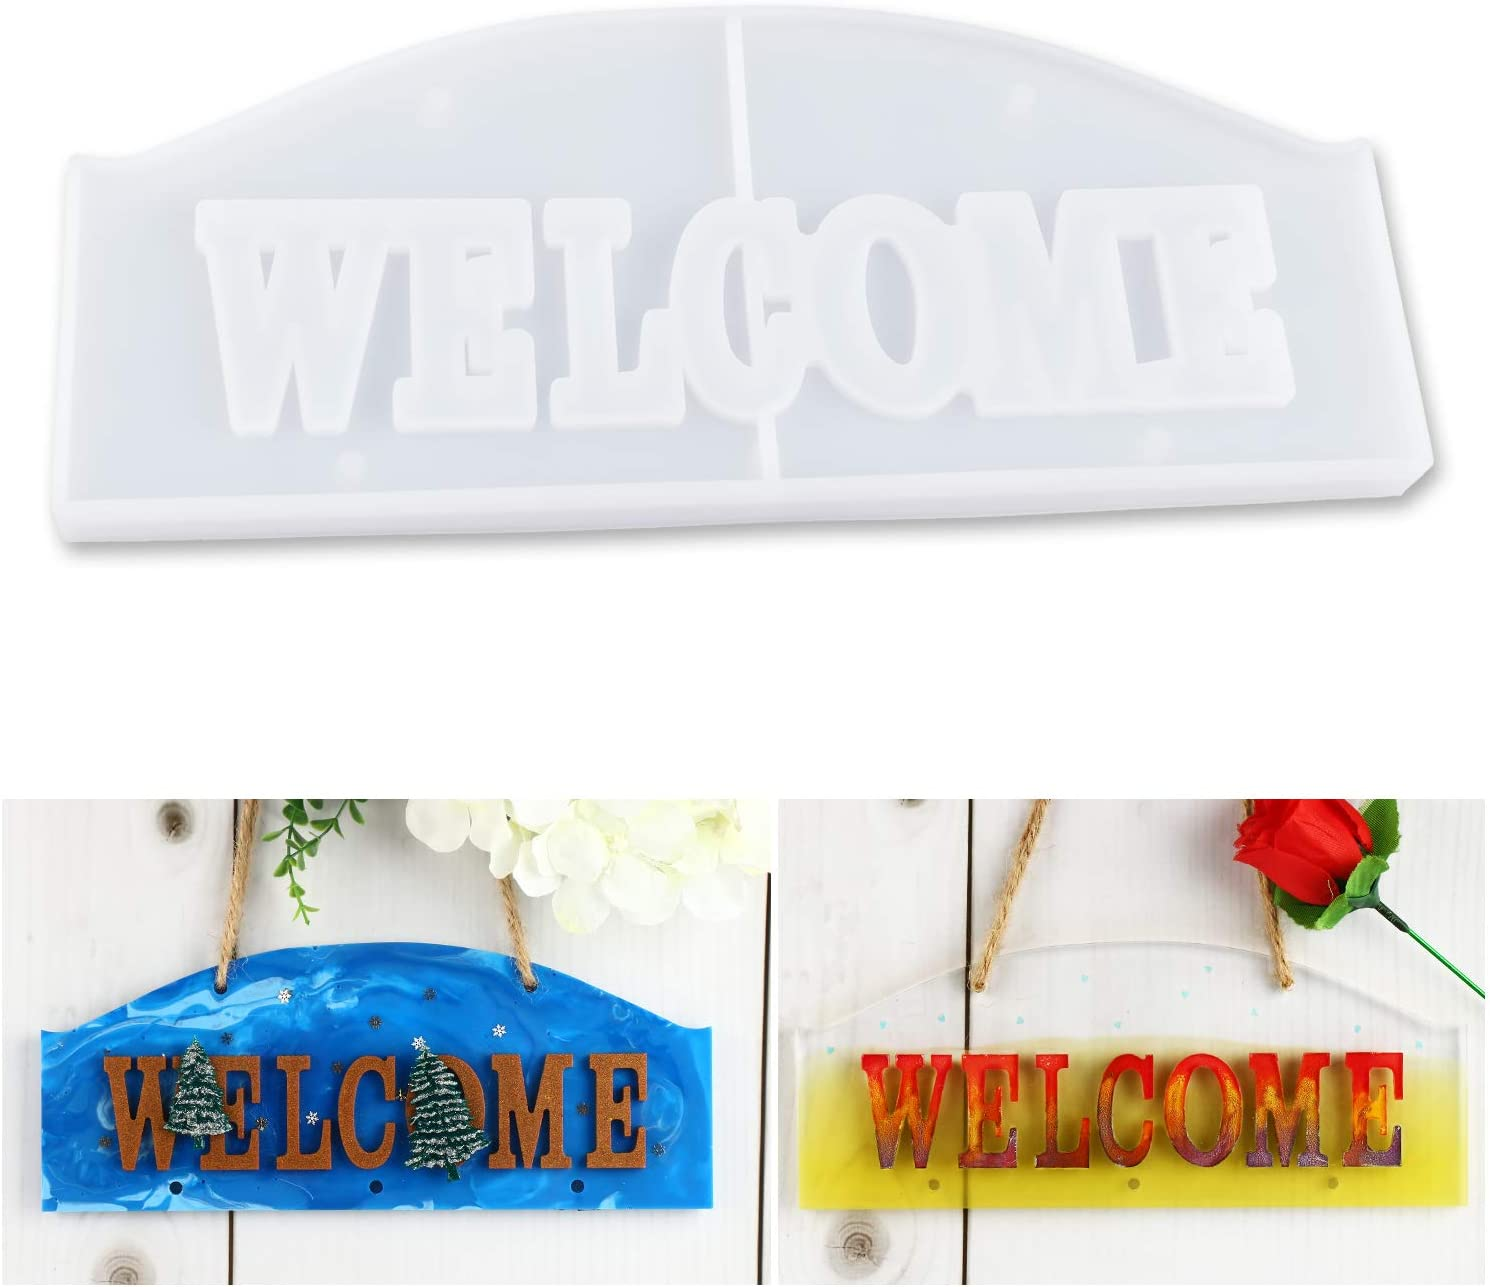 Silicone Resin Molds to Decorate Door//Wall Epoxy Resin Molds to Make Hangable Projects LETS RESIN Exclusive Welcome Mold